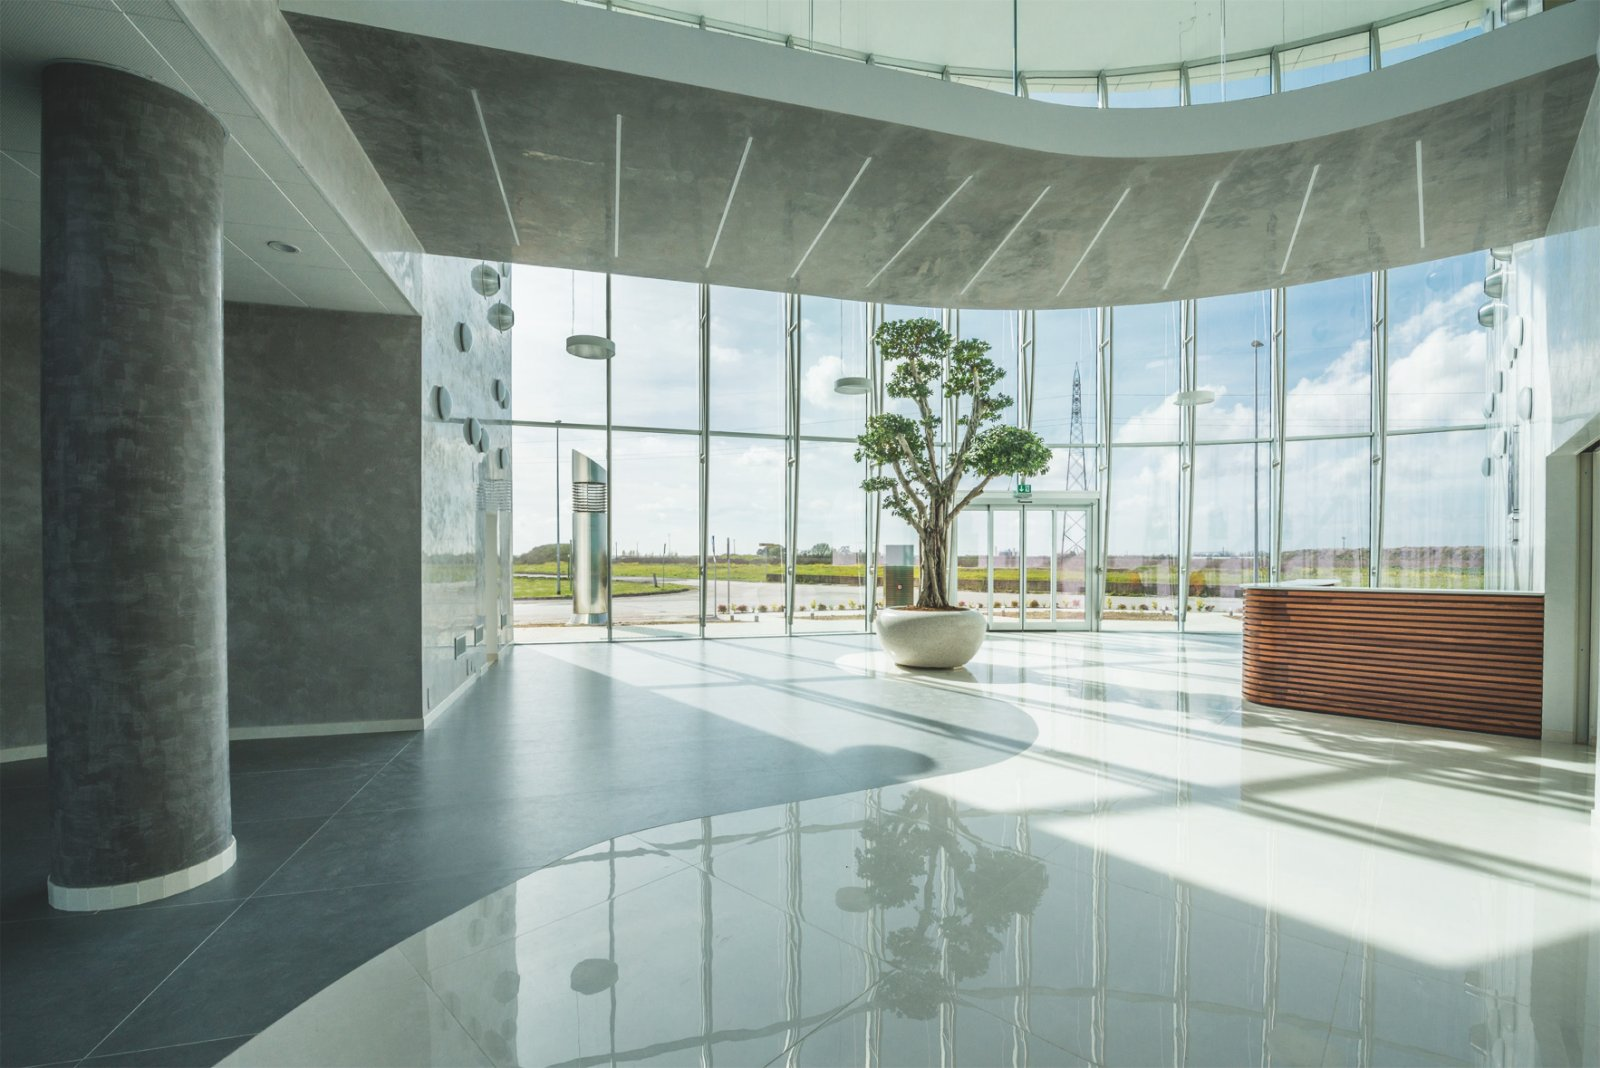 Forti Holding Spa HQ